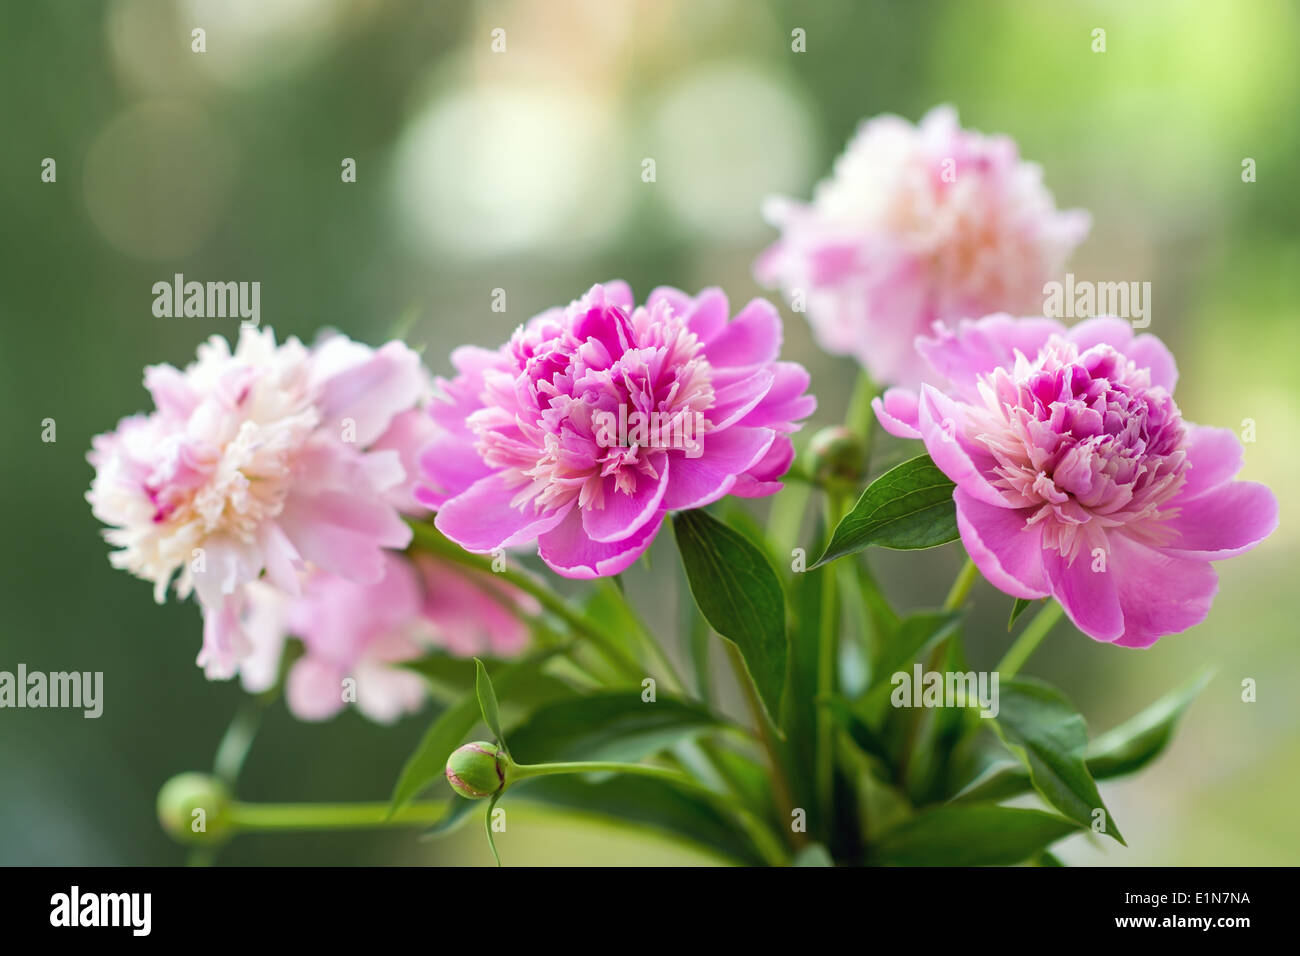 Closeup photo of flowers (peonies). Shallow depth of field - Stock Image